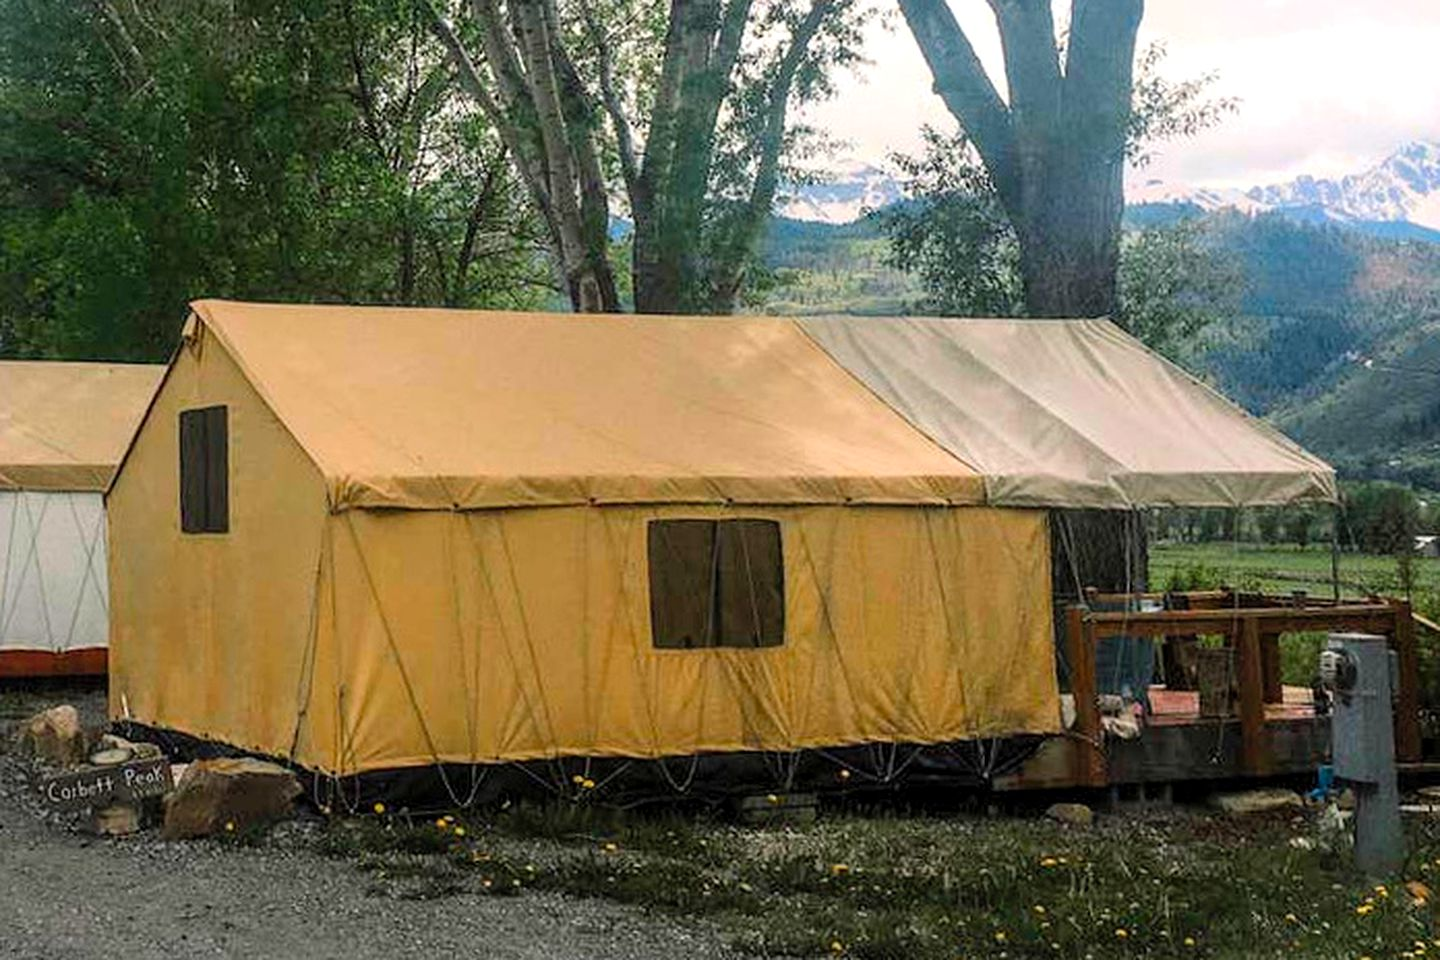 Cozy safari tent rental for two guests to go glamping in Colorado